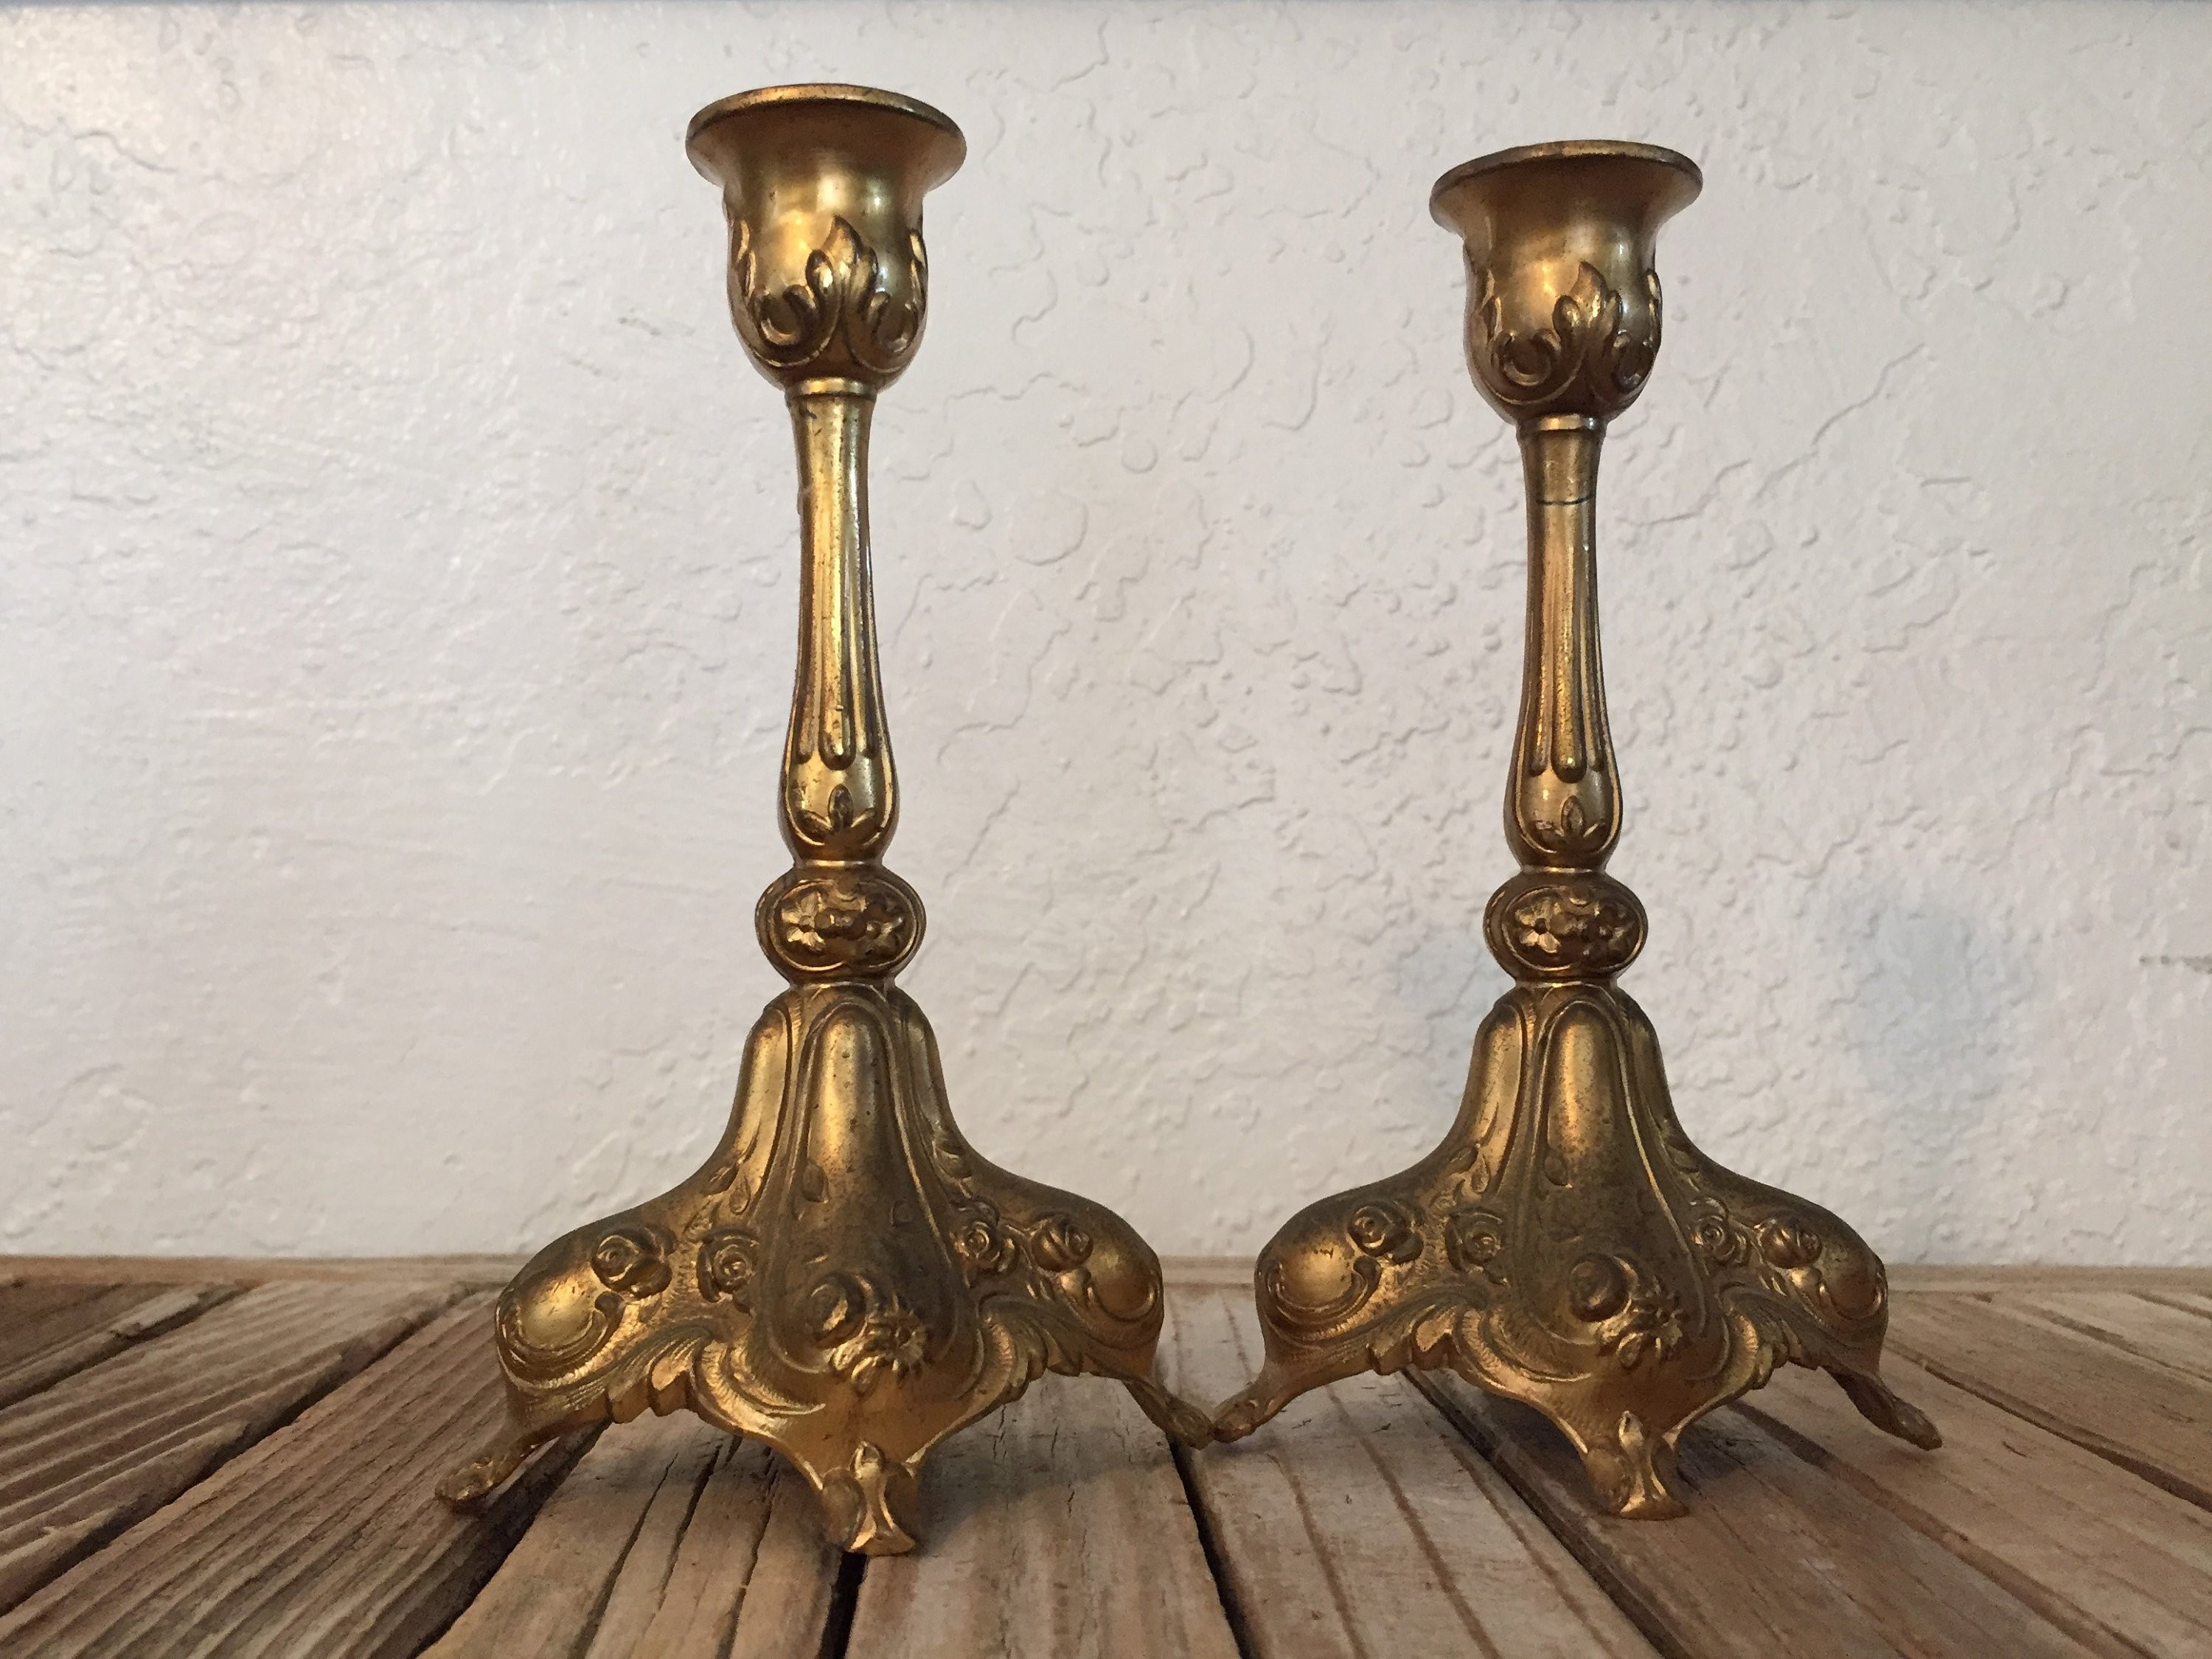 vintage frosted glass vase of pair of antique metal cast art nouveau gold french candle etsy regarding image 2